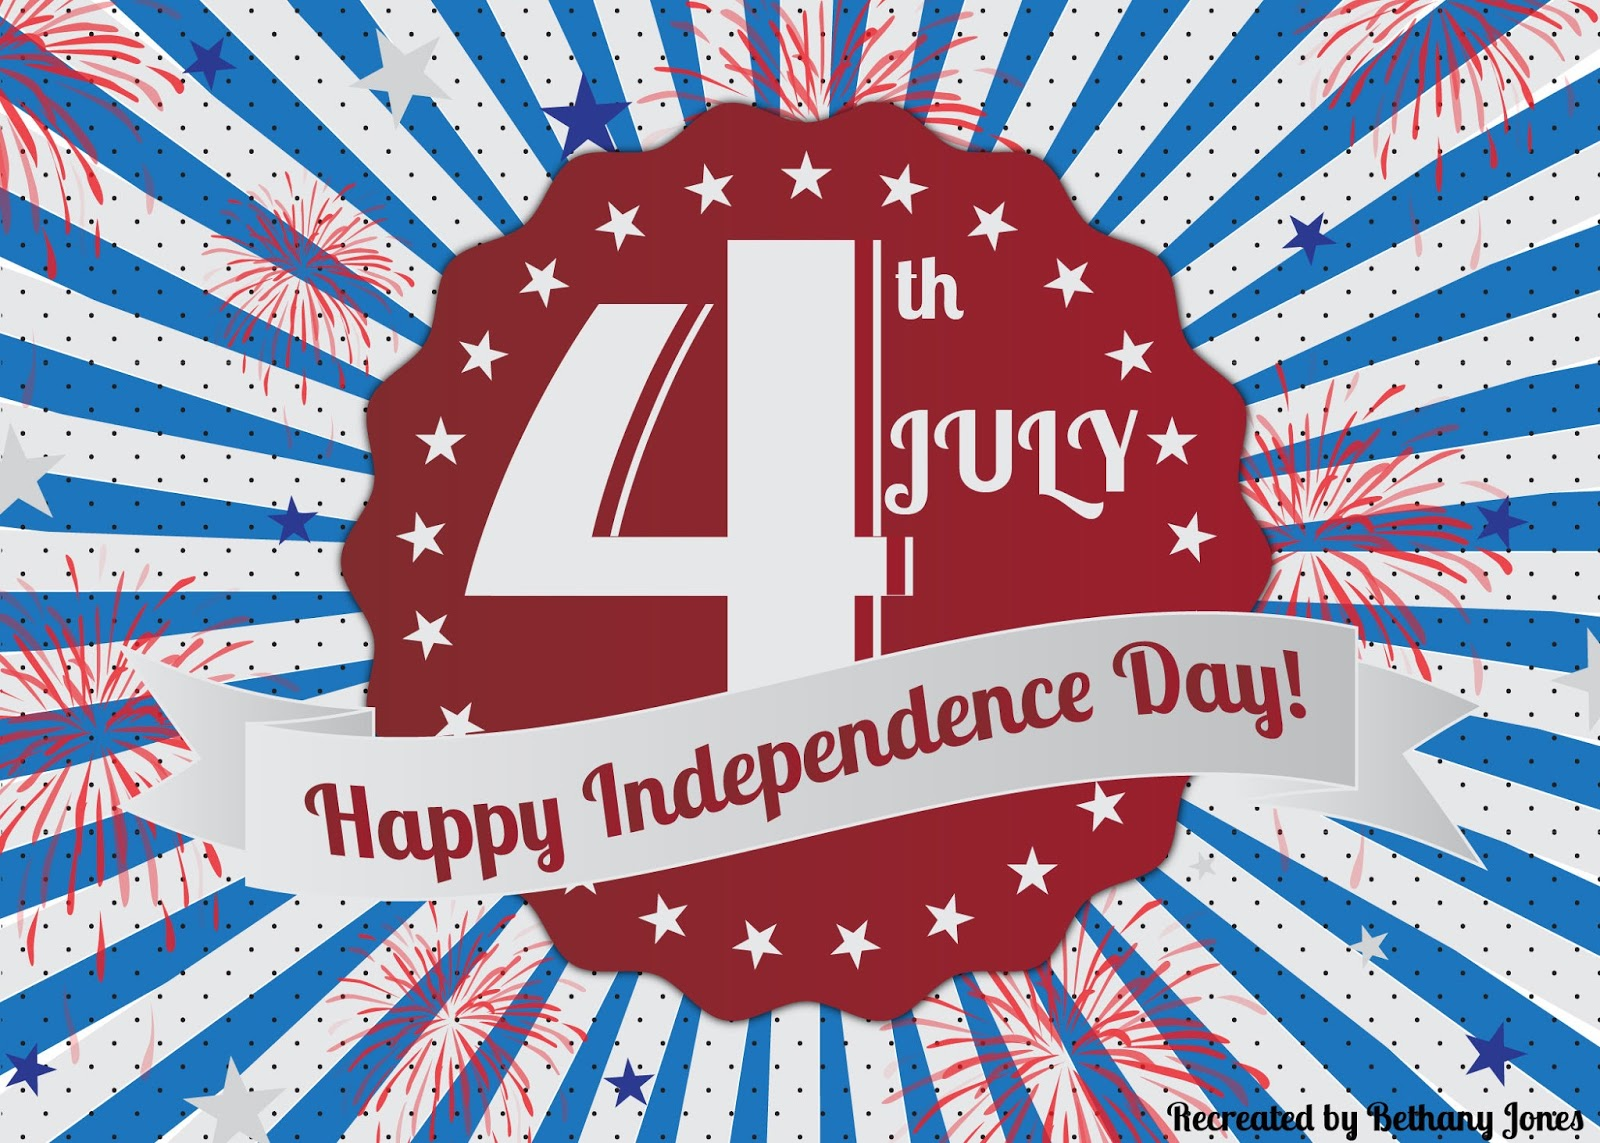 happy 4th of july images and wallpapers u2013 usa independence day